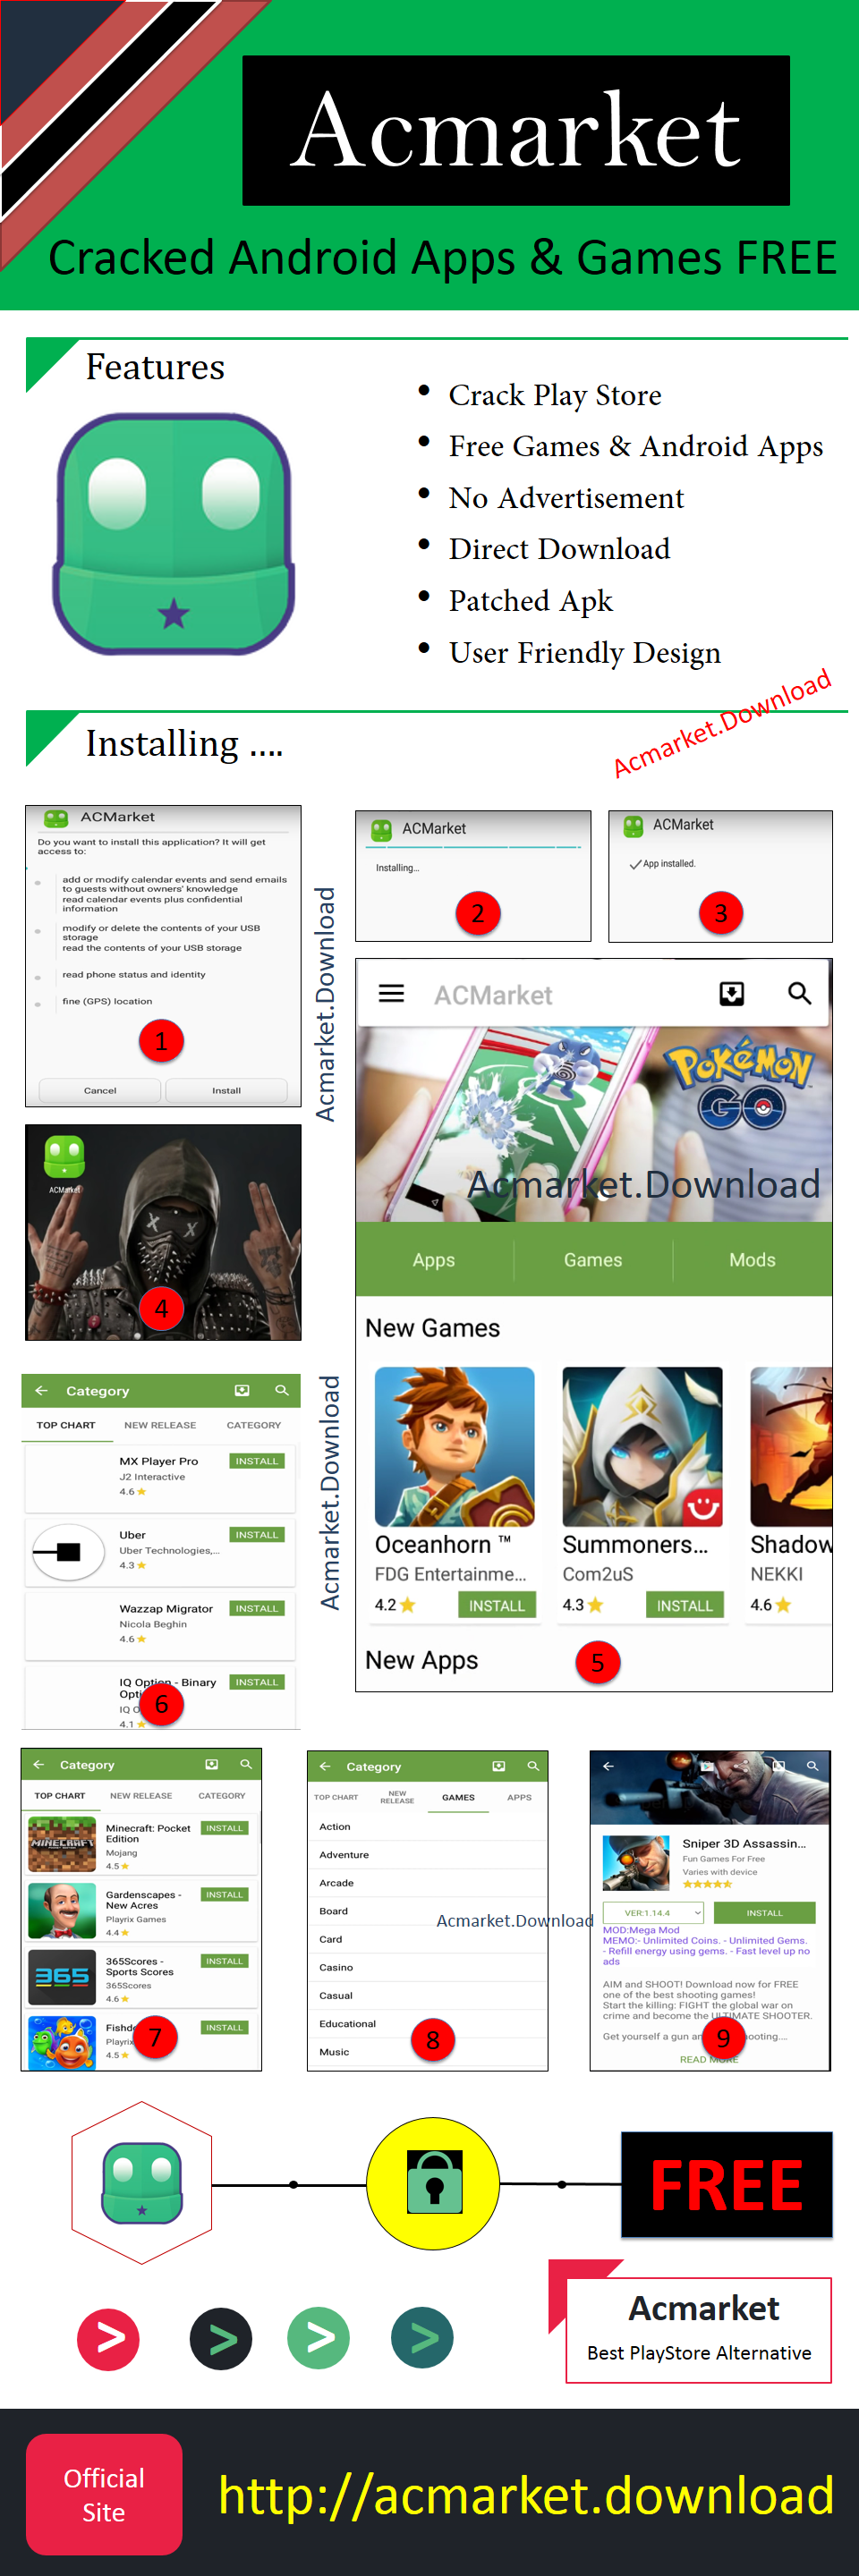 ac market app download for android apk